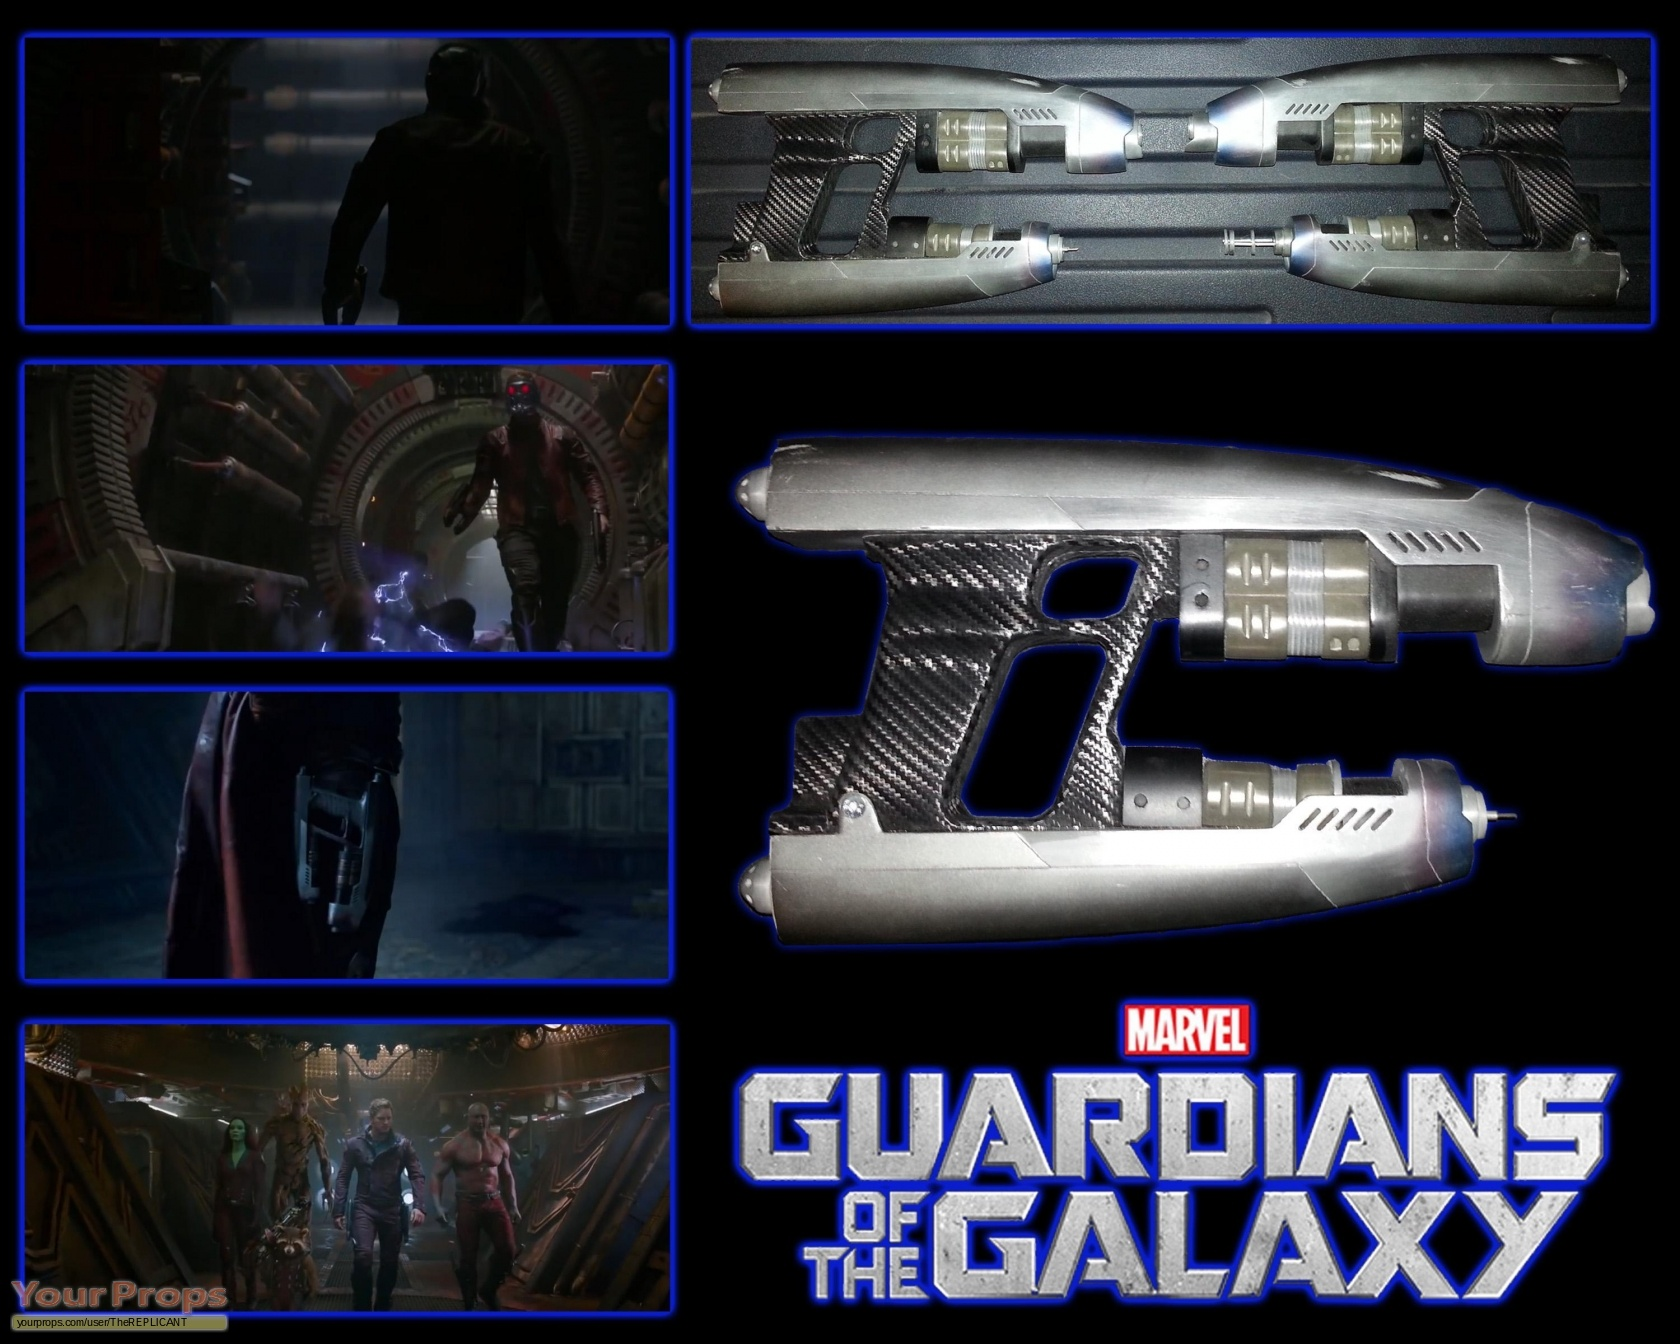 Guardians of the galaxy star lord quad blaster guns made from scratch